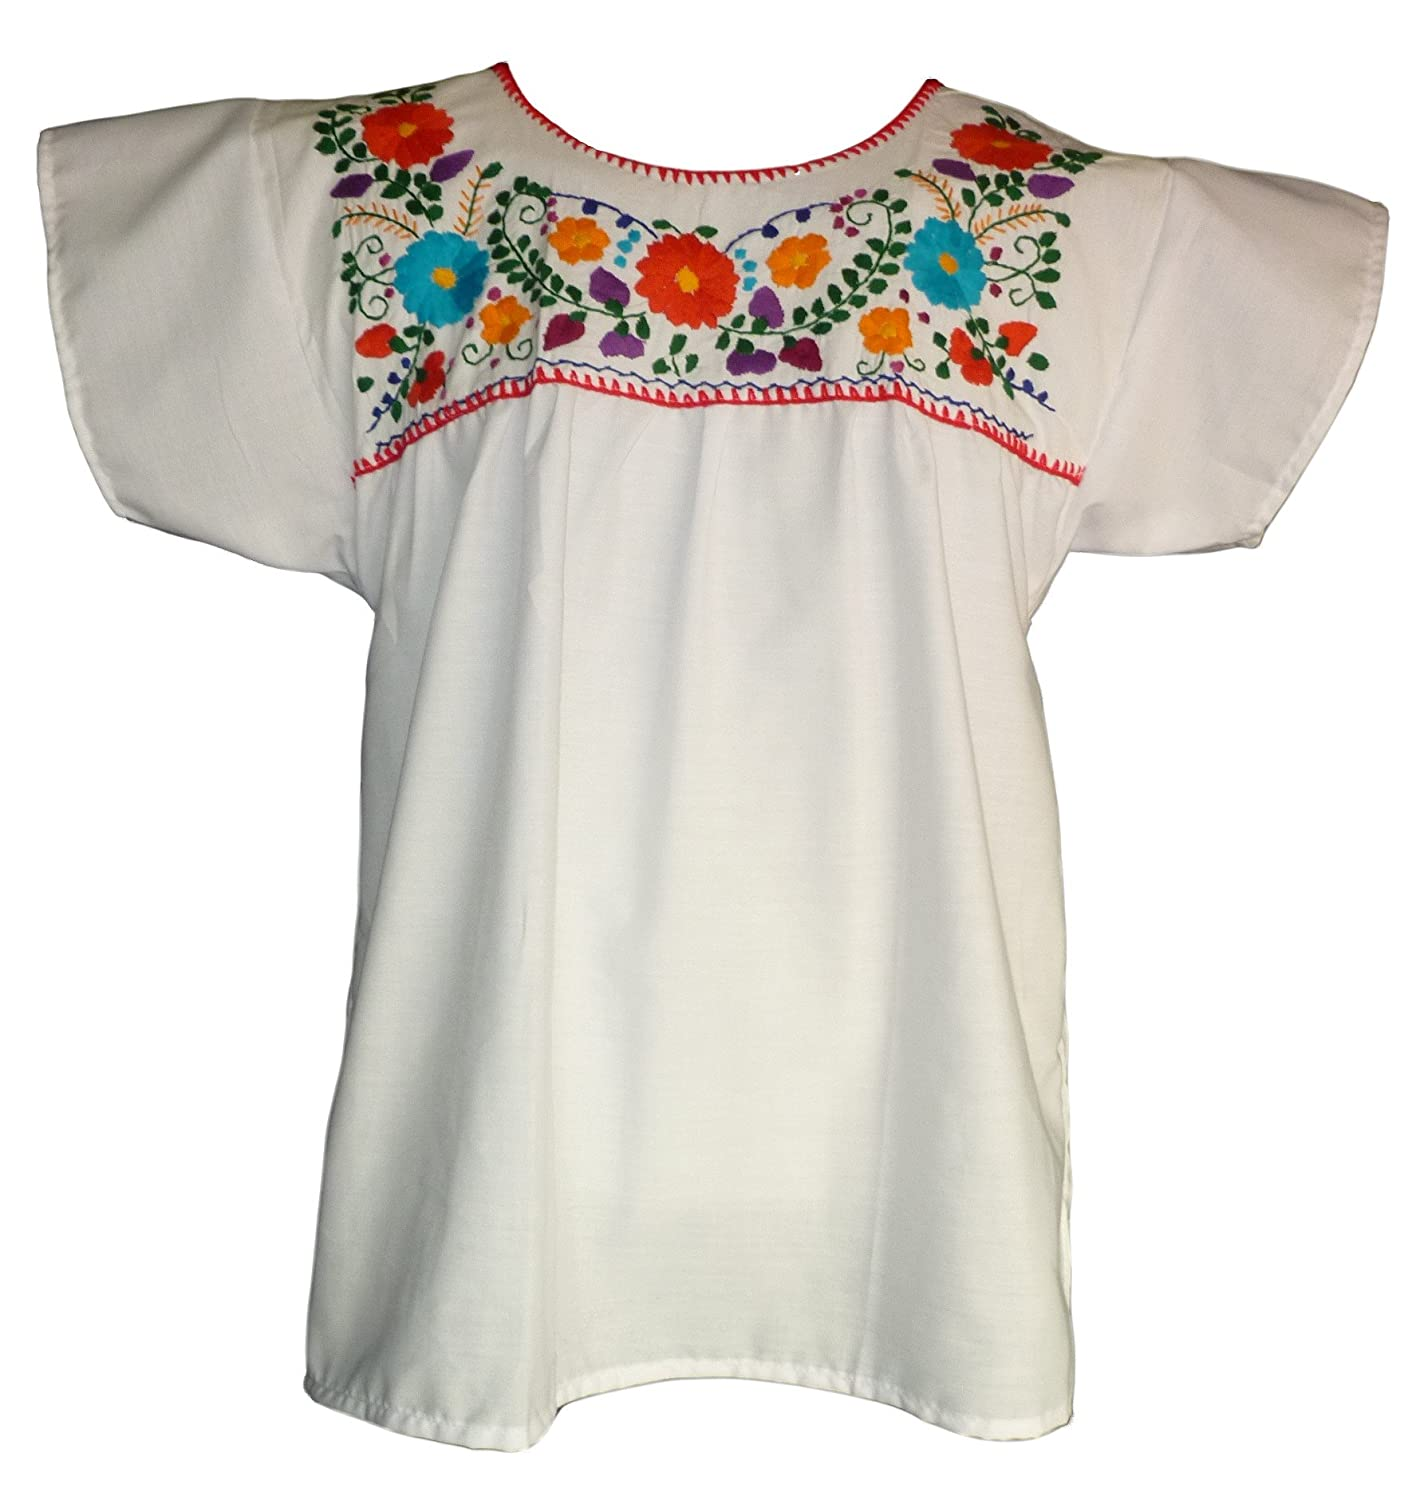 487b1d5436754 Womens puebla mexican blouse white at amazon womens clothing store jpg  1416x1500 Traditional mexican blouse